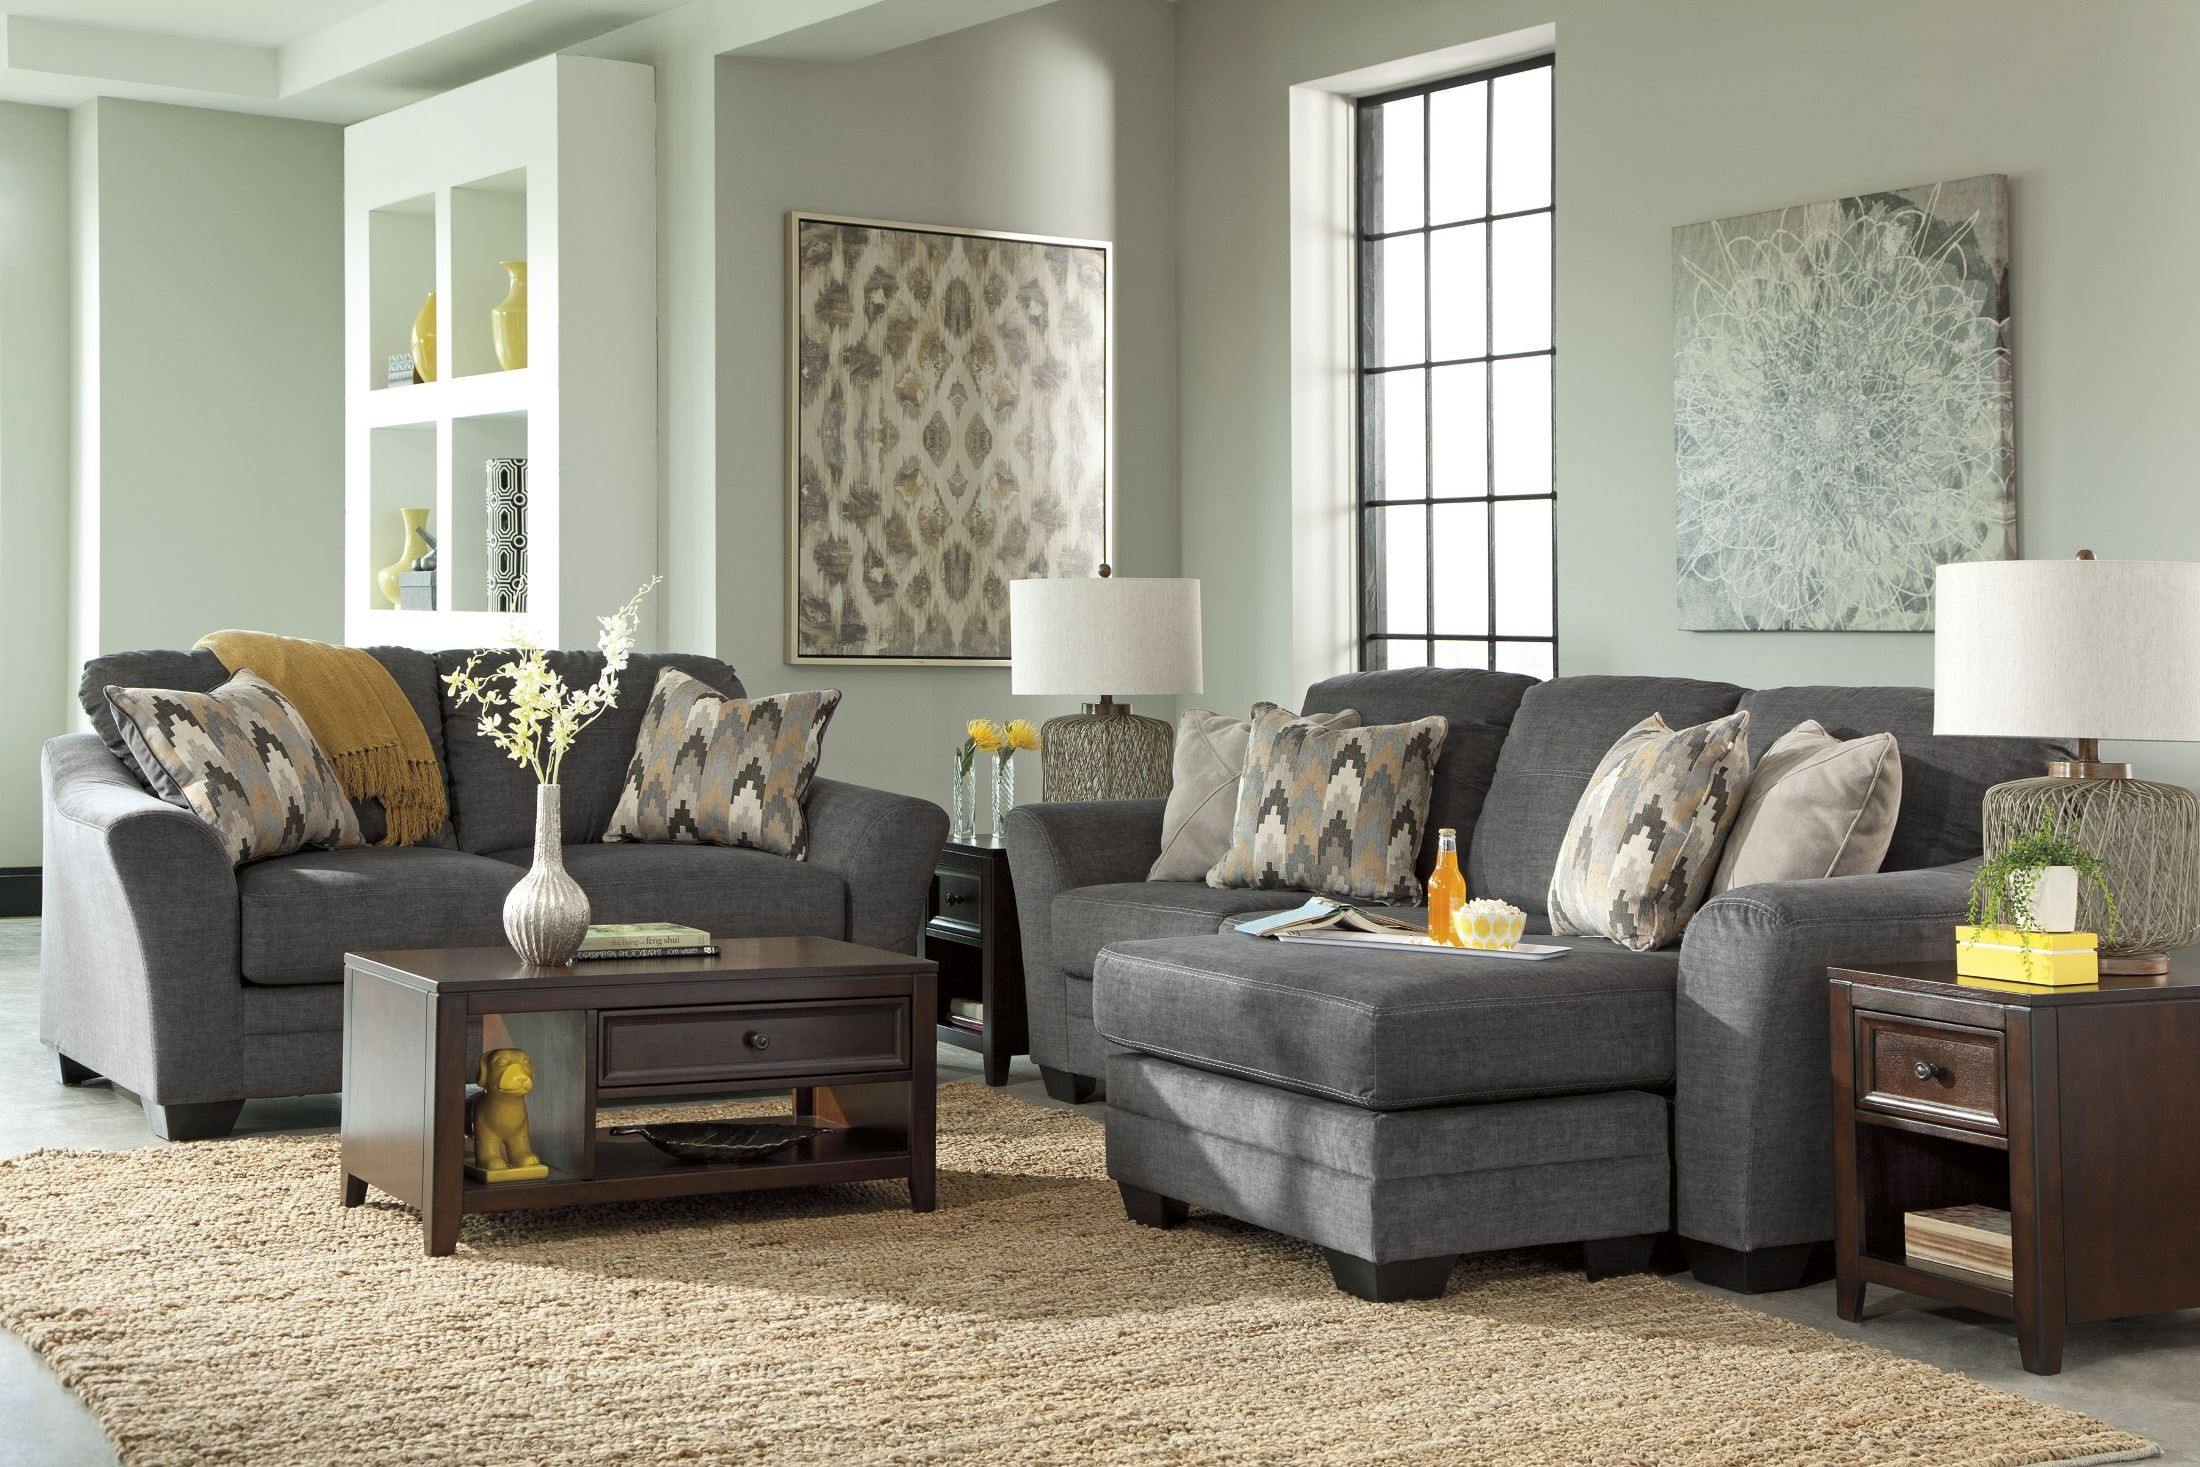 Braxlin Charcoal Queen Sofa Chaise Sleeper from Ashley